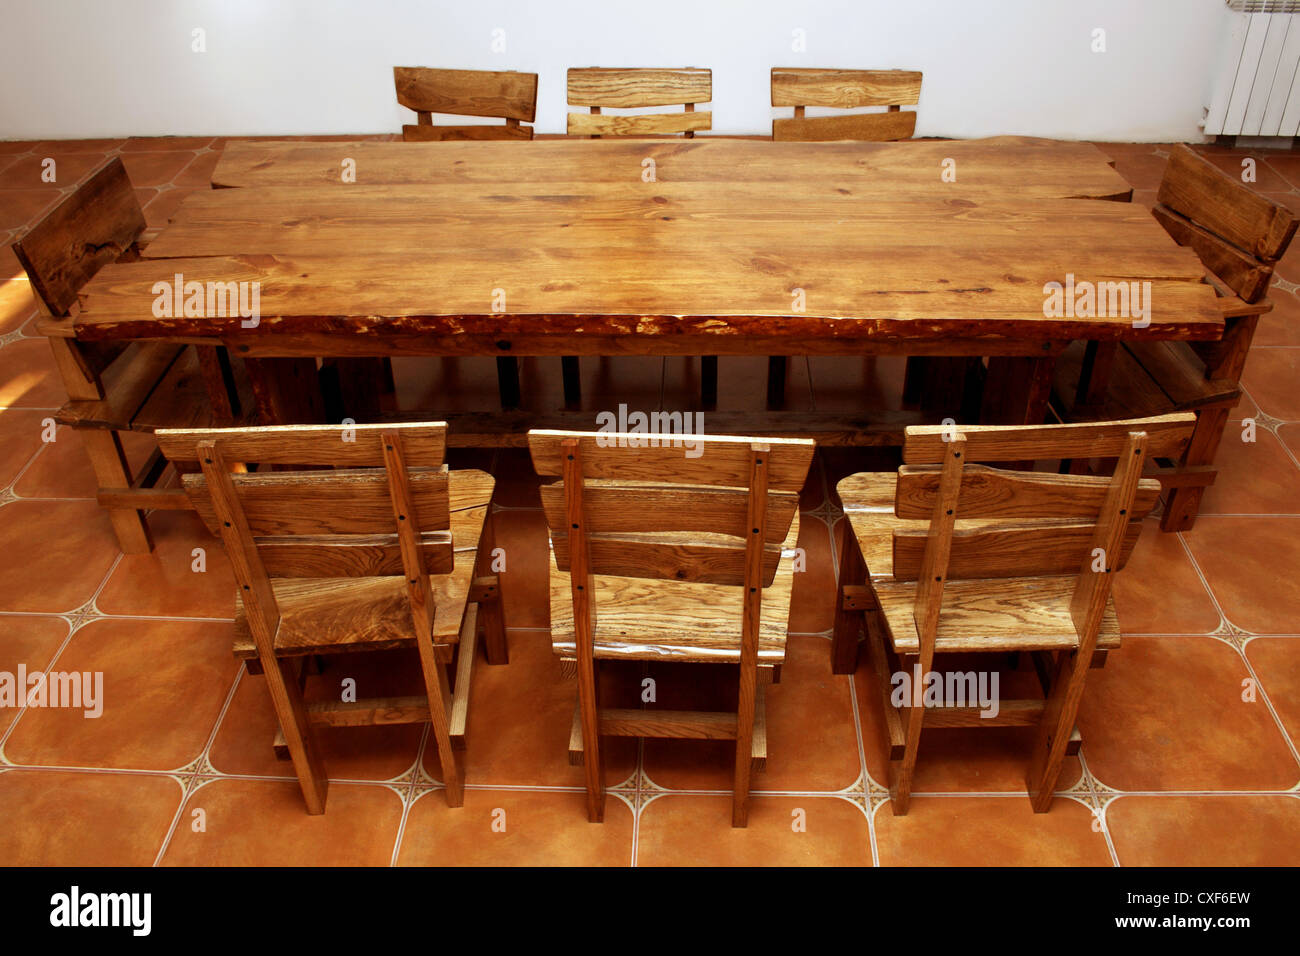 large kitchen table contractors hand made stock photo 50736193 alamy